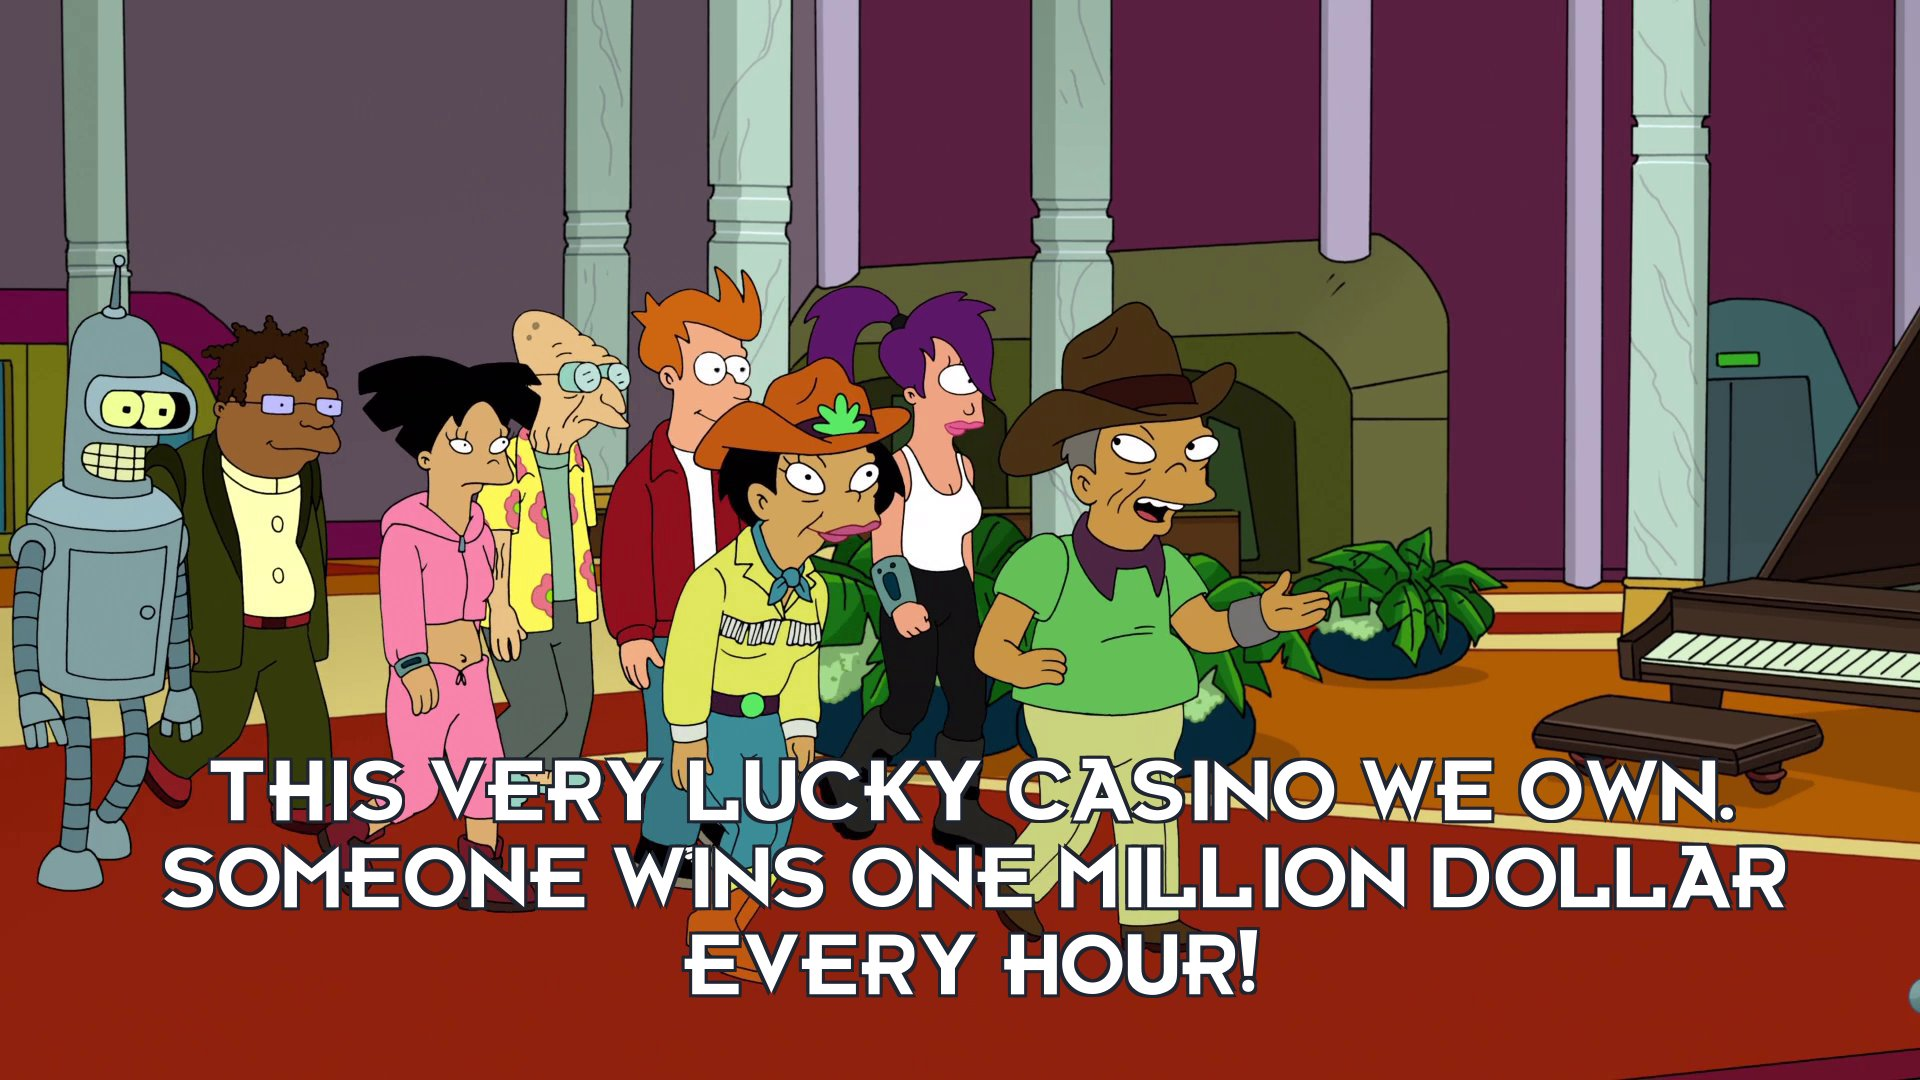 Leo Wong: This very lucky casino we own. Someone wins one million dollar every hour!